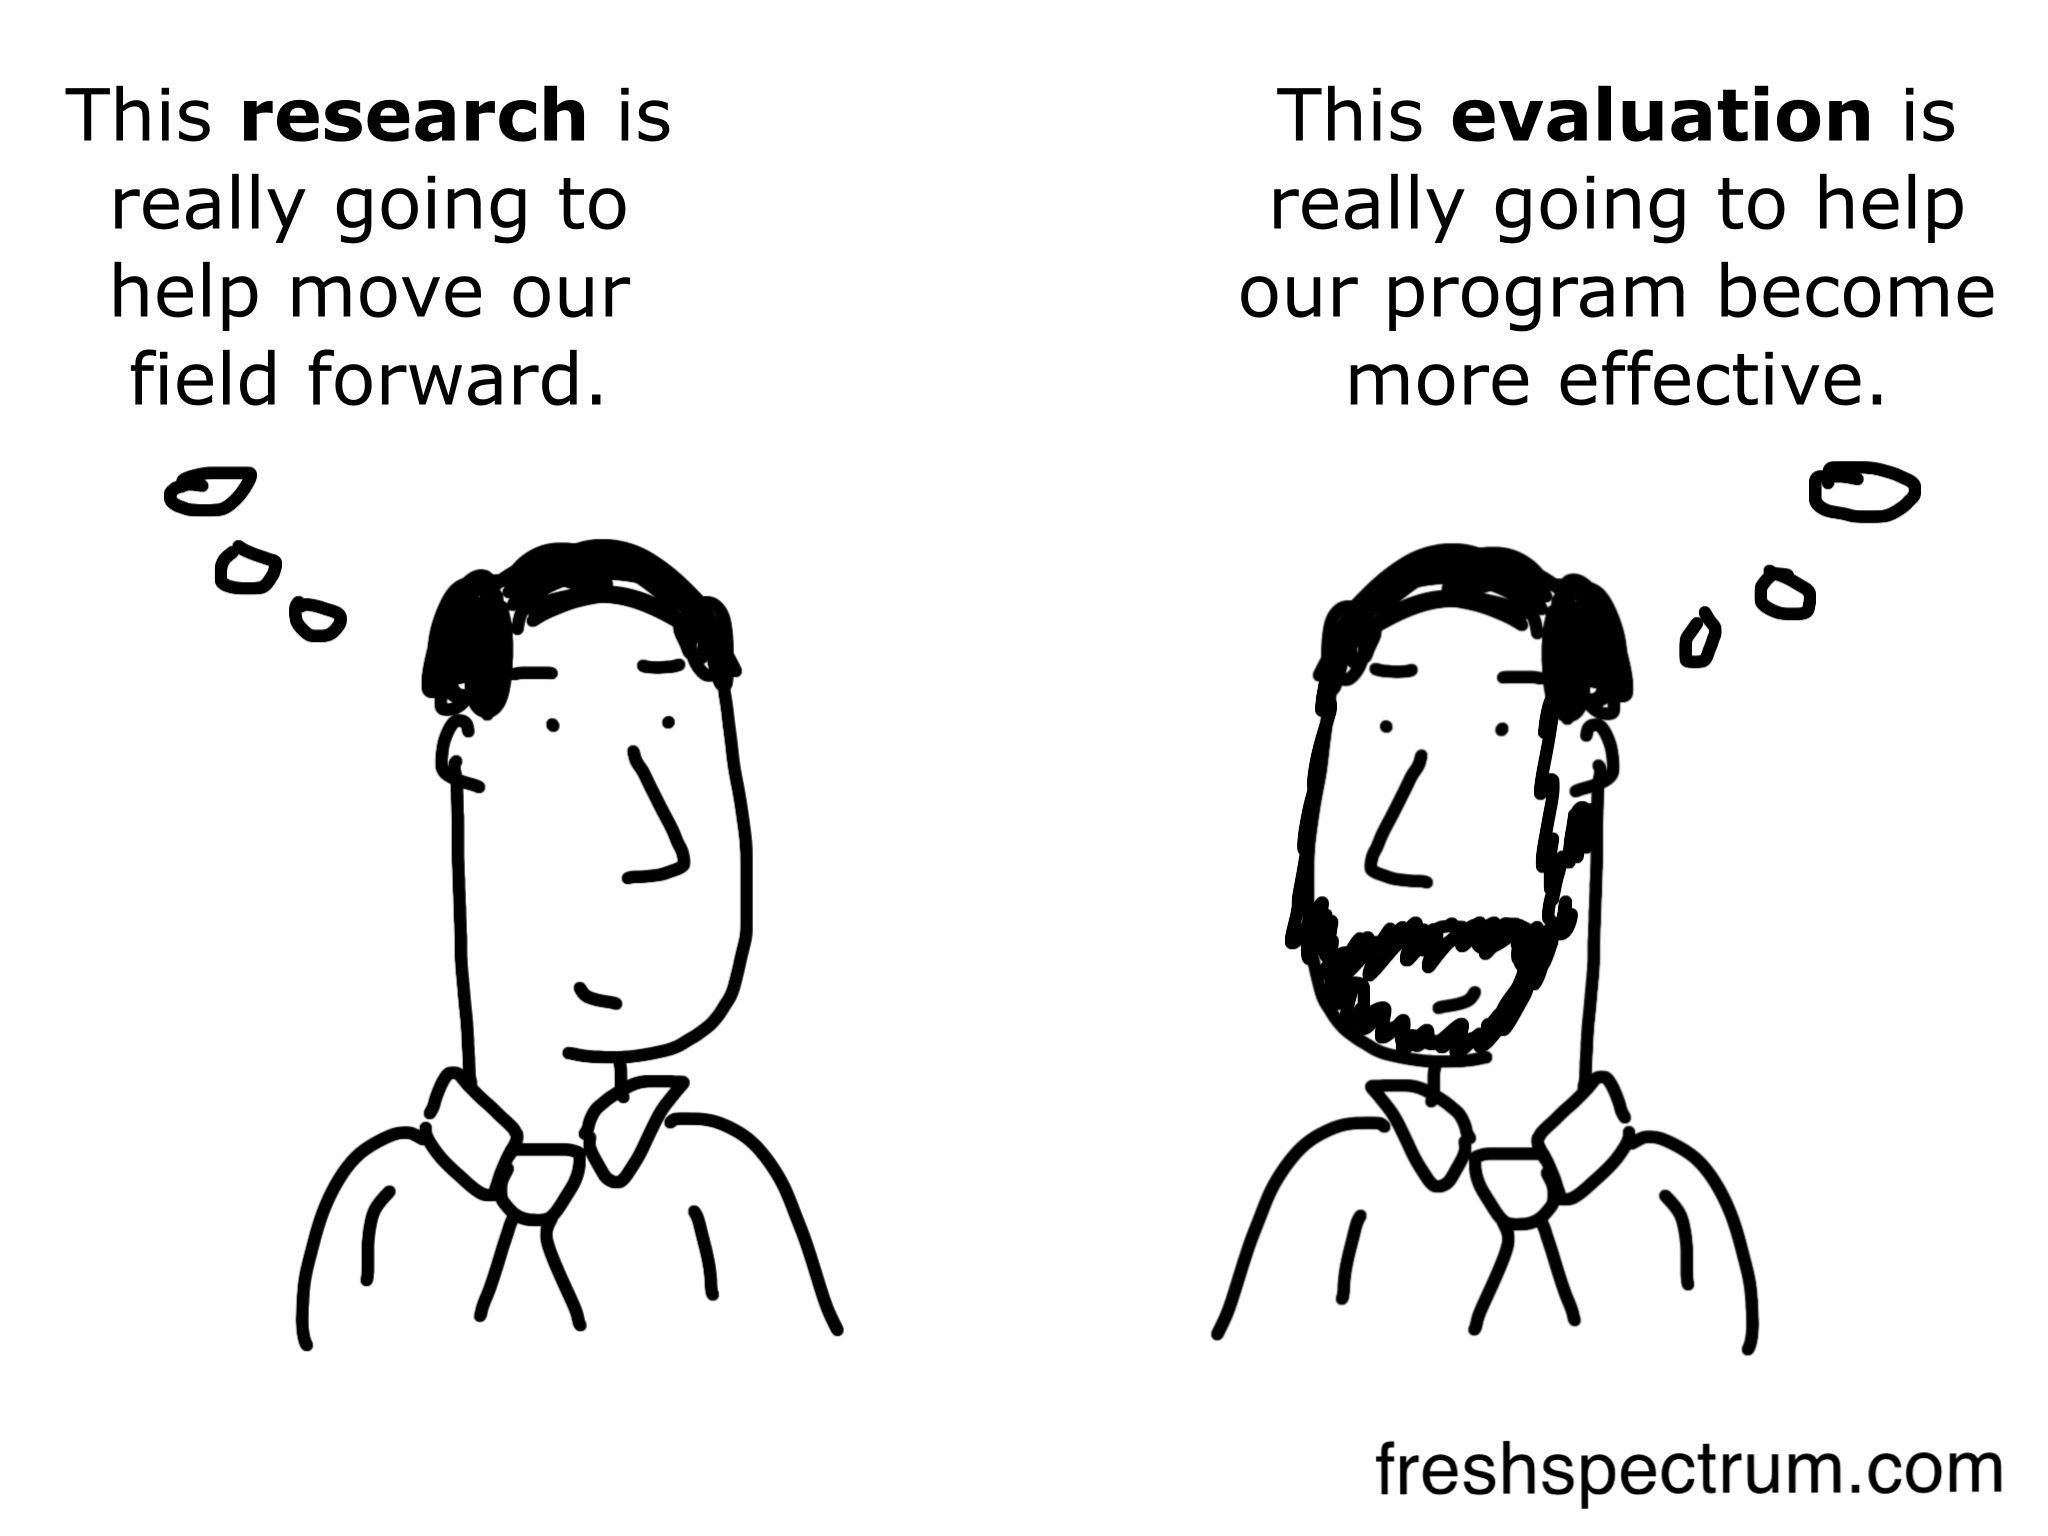 Research Vs Evaluation Cartoon By Chris Lysy  Program Evaluation